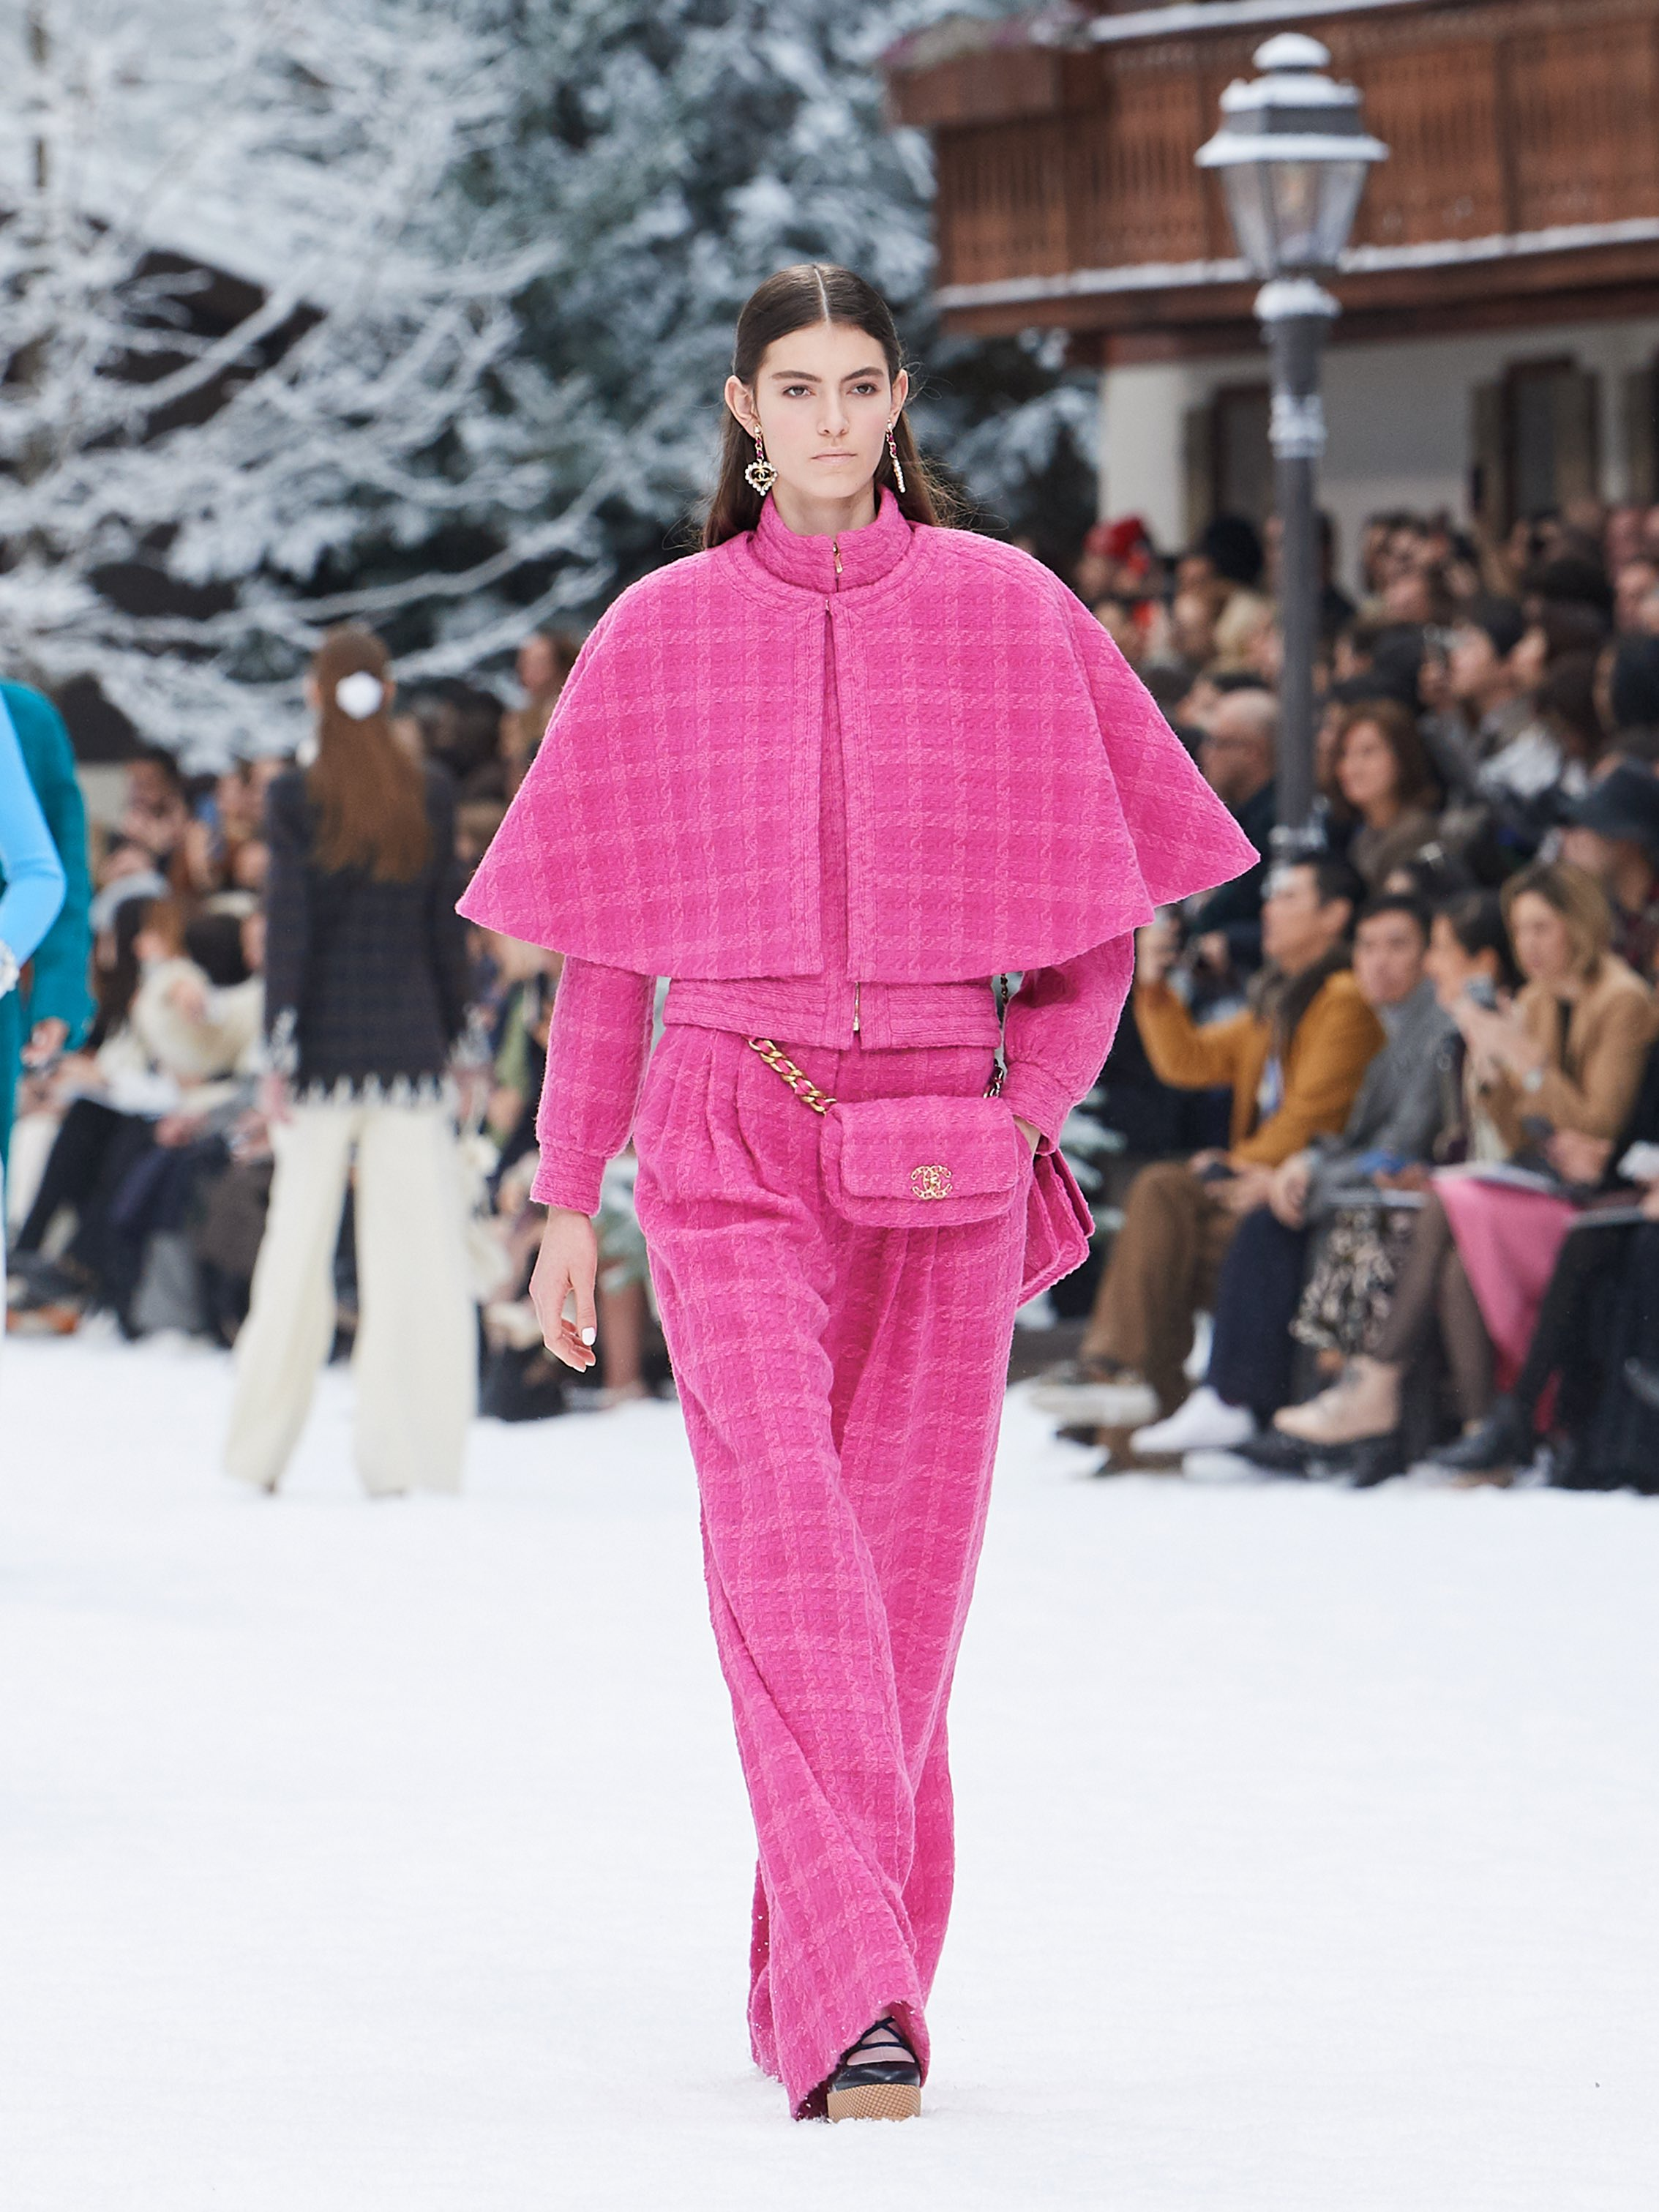 Chanel AW19 Paris Fashion Week pink outfit